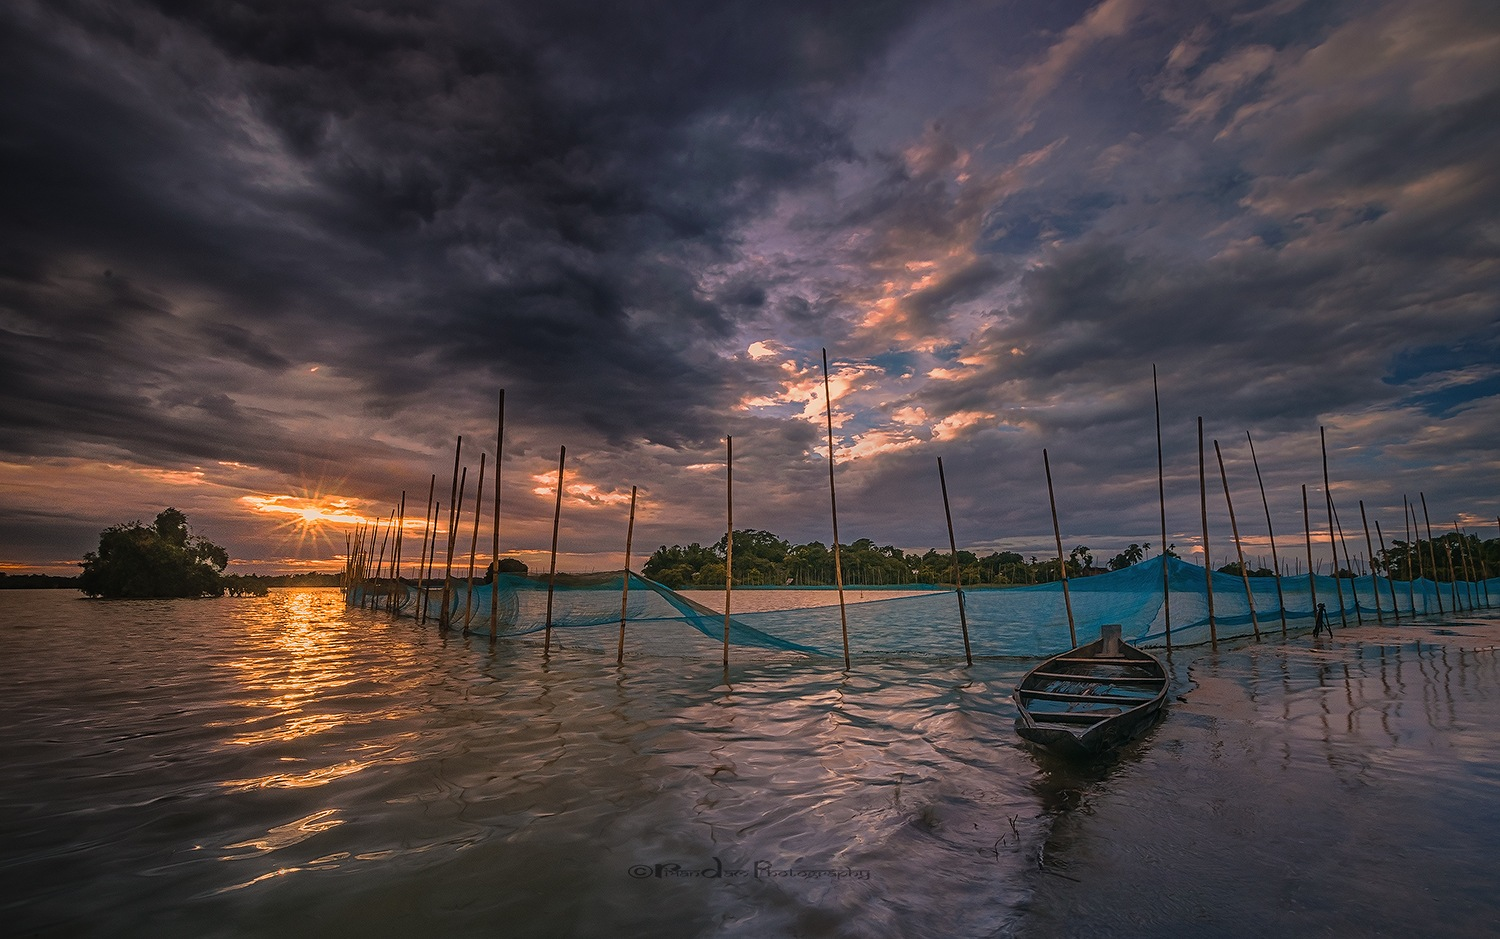 End of the day by Ripan Dam